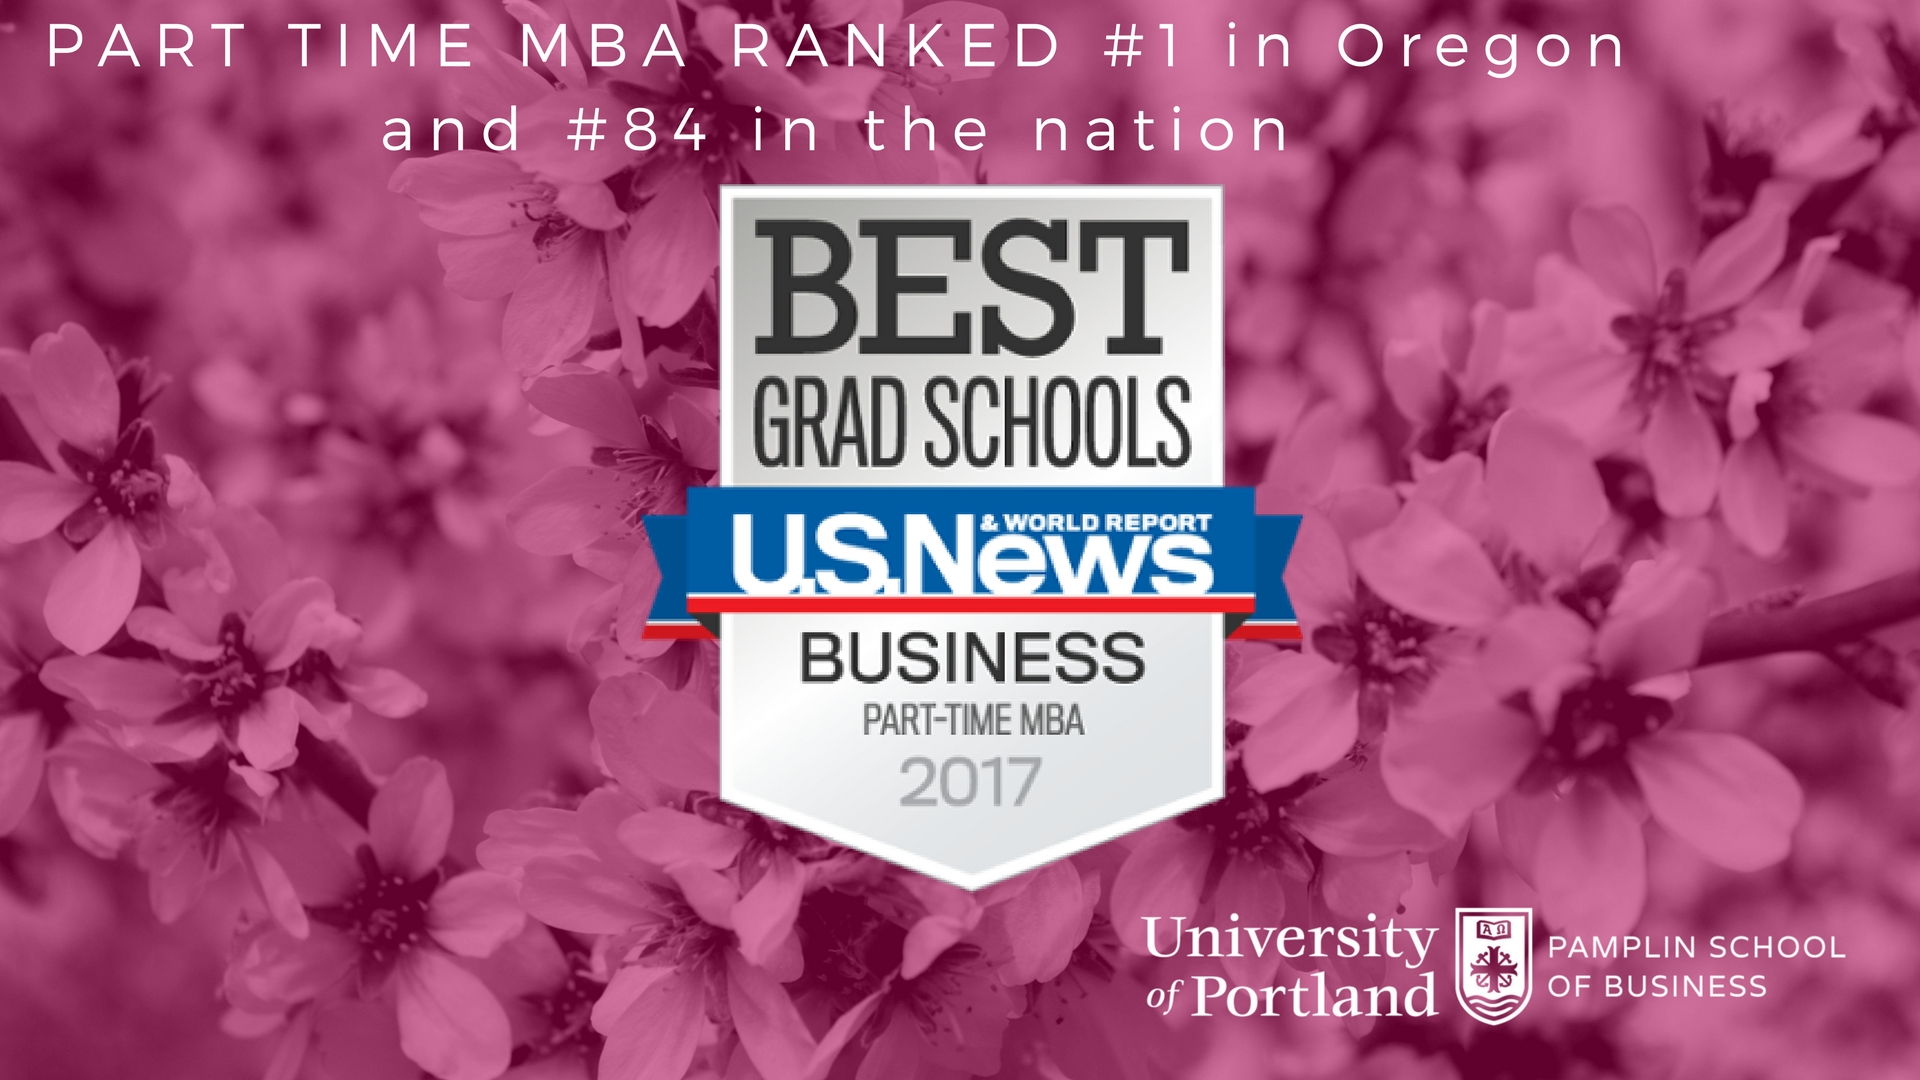 UP Part Time MBA Program ranked # 1 in Oregon, #84 in the US